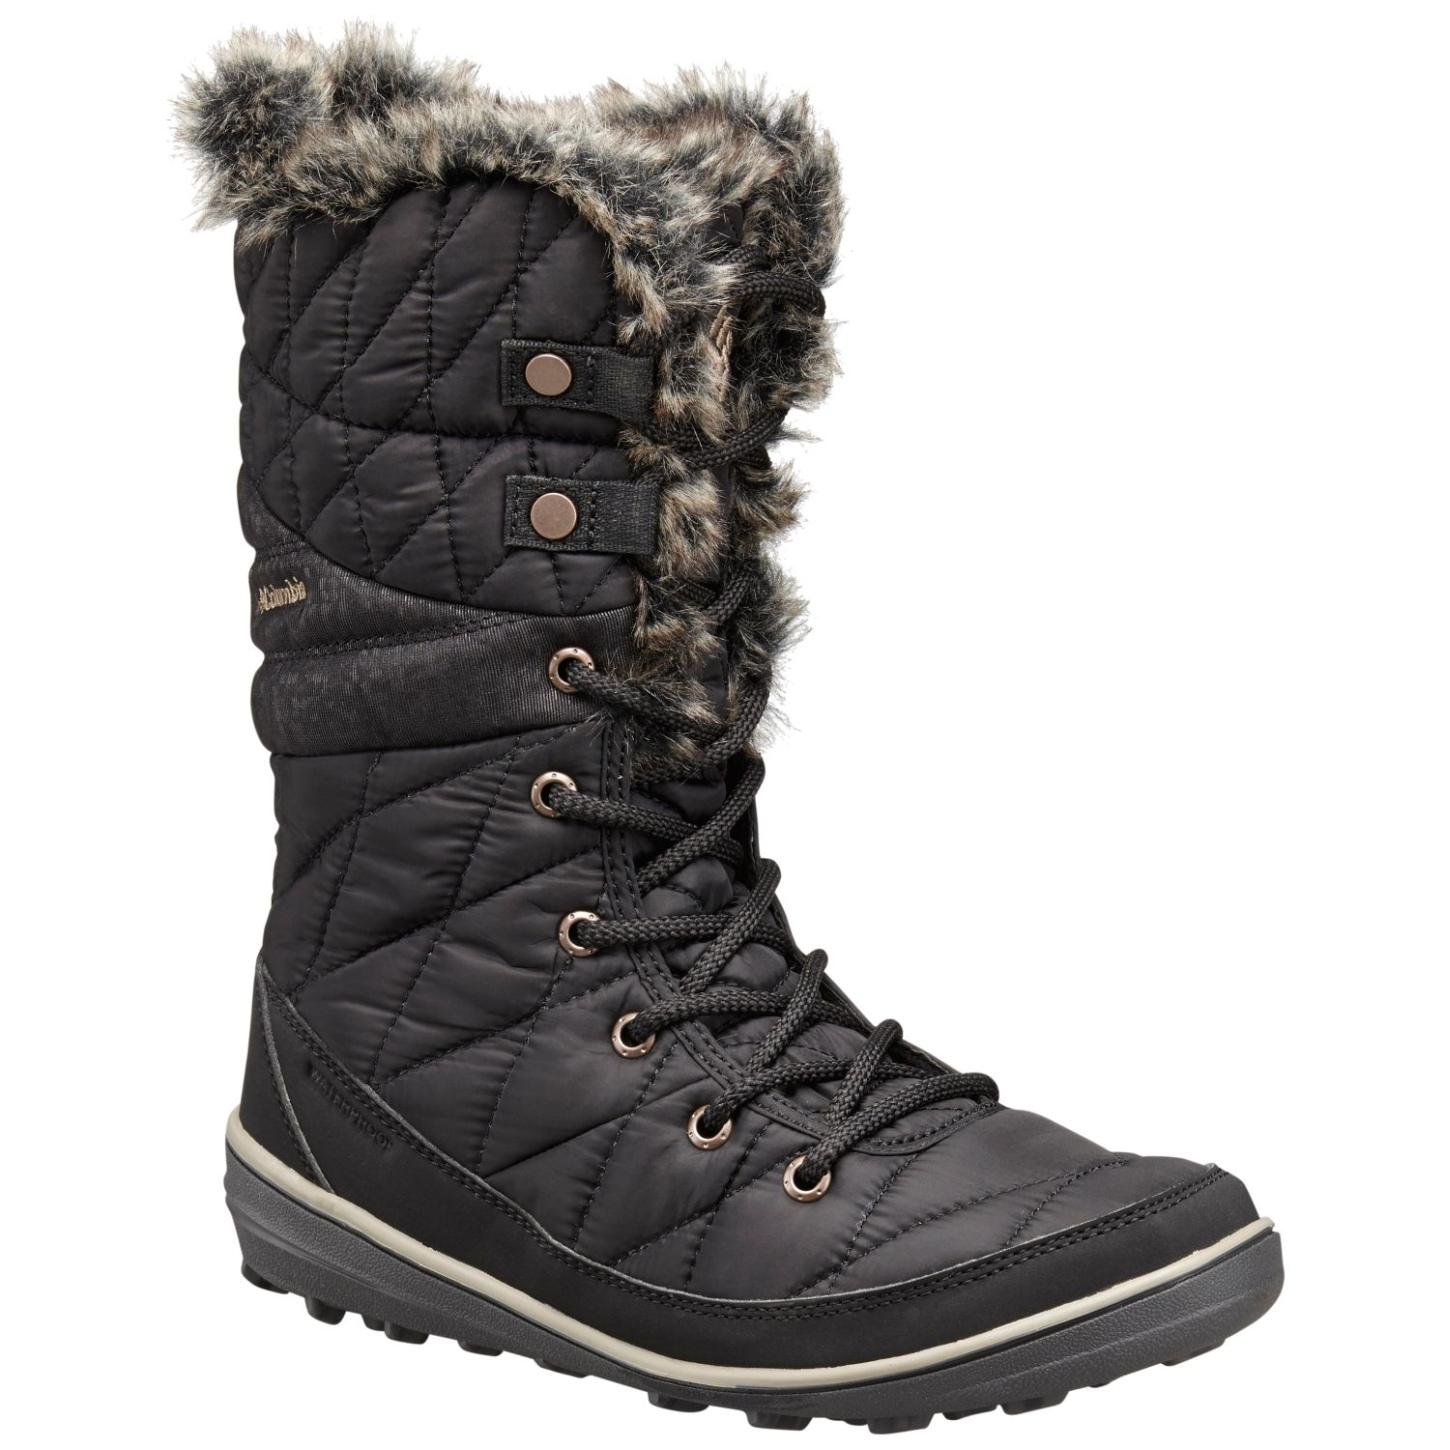 Columbia Women's Heavenly Omni-heat Winter Boots Black, Kettle-30